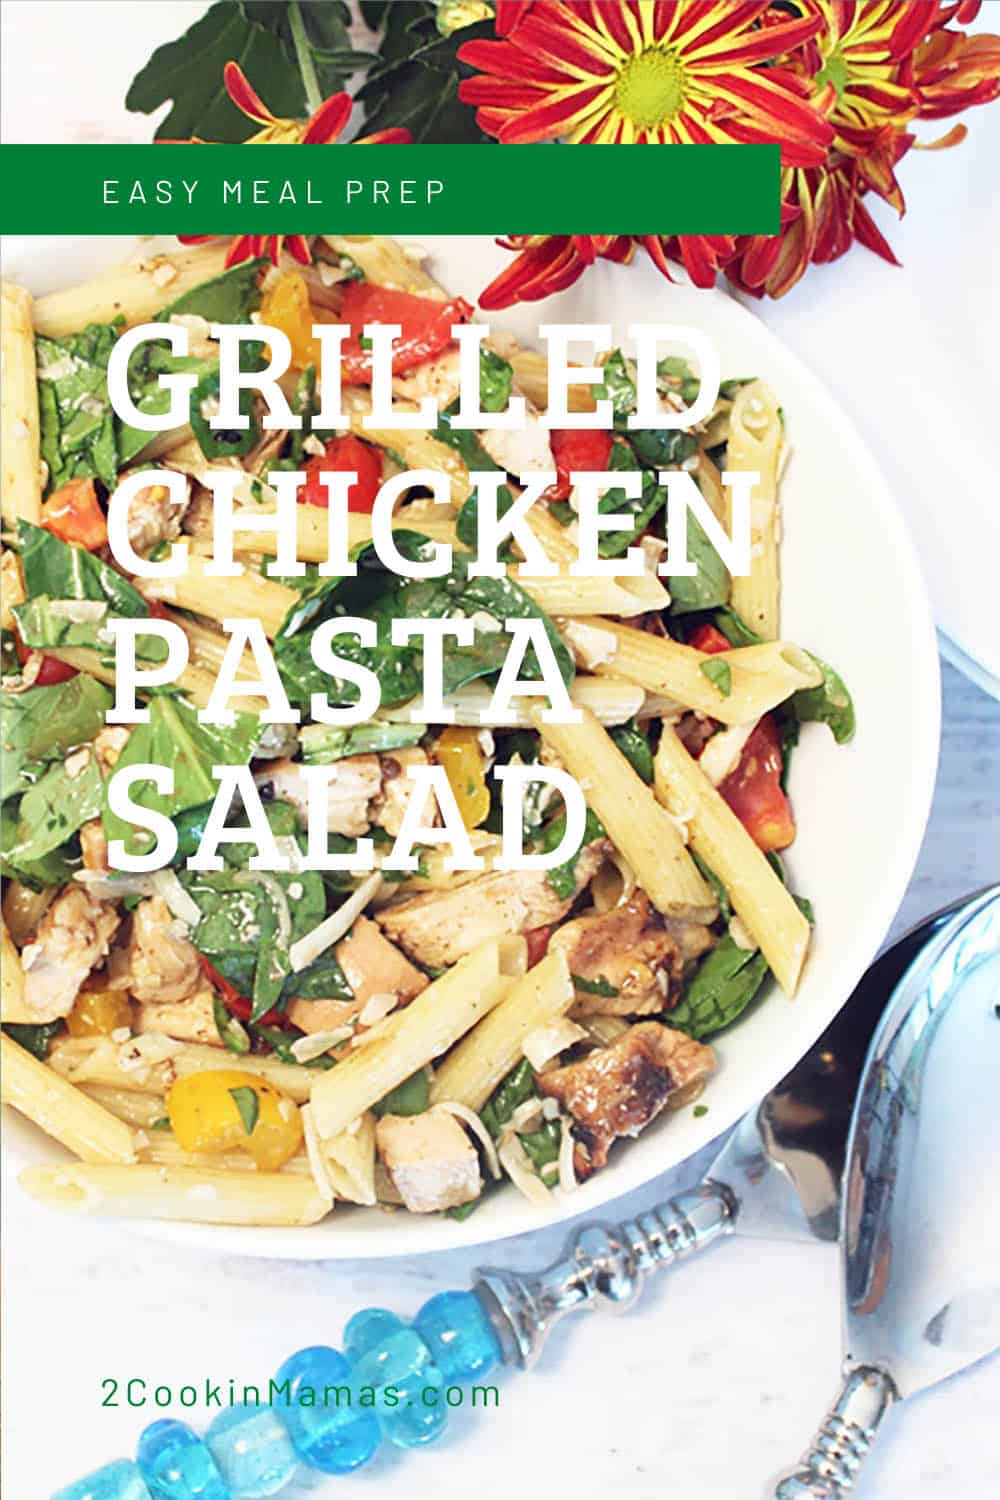 Grilled Chicken Pasta Salad with Balsamic Dressing